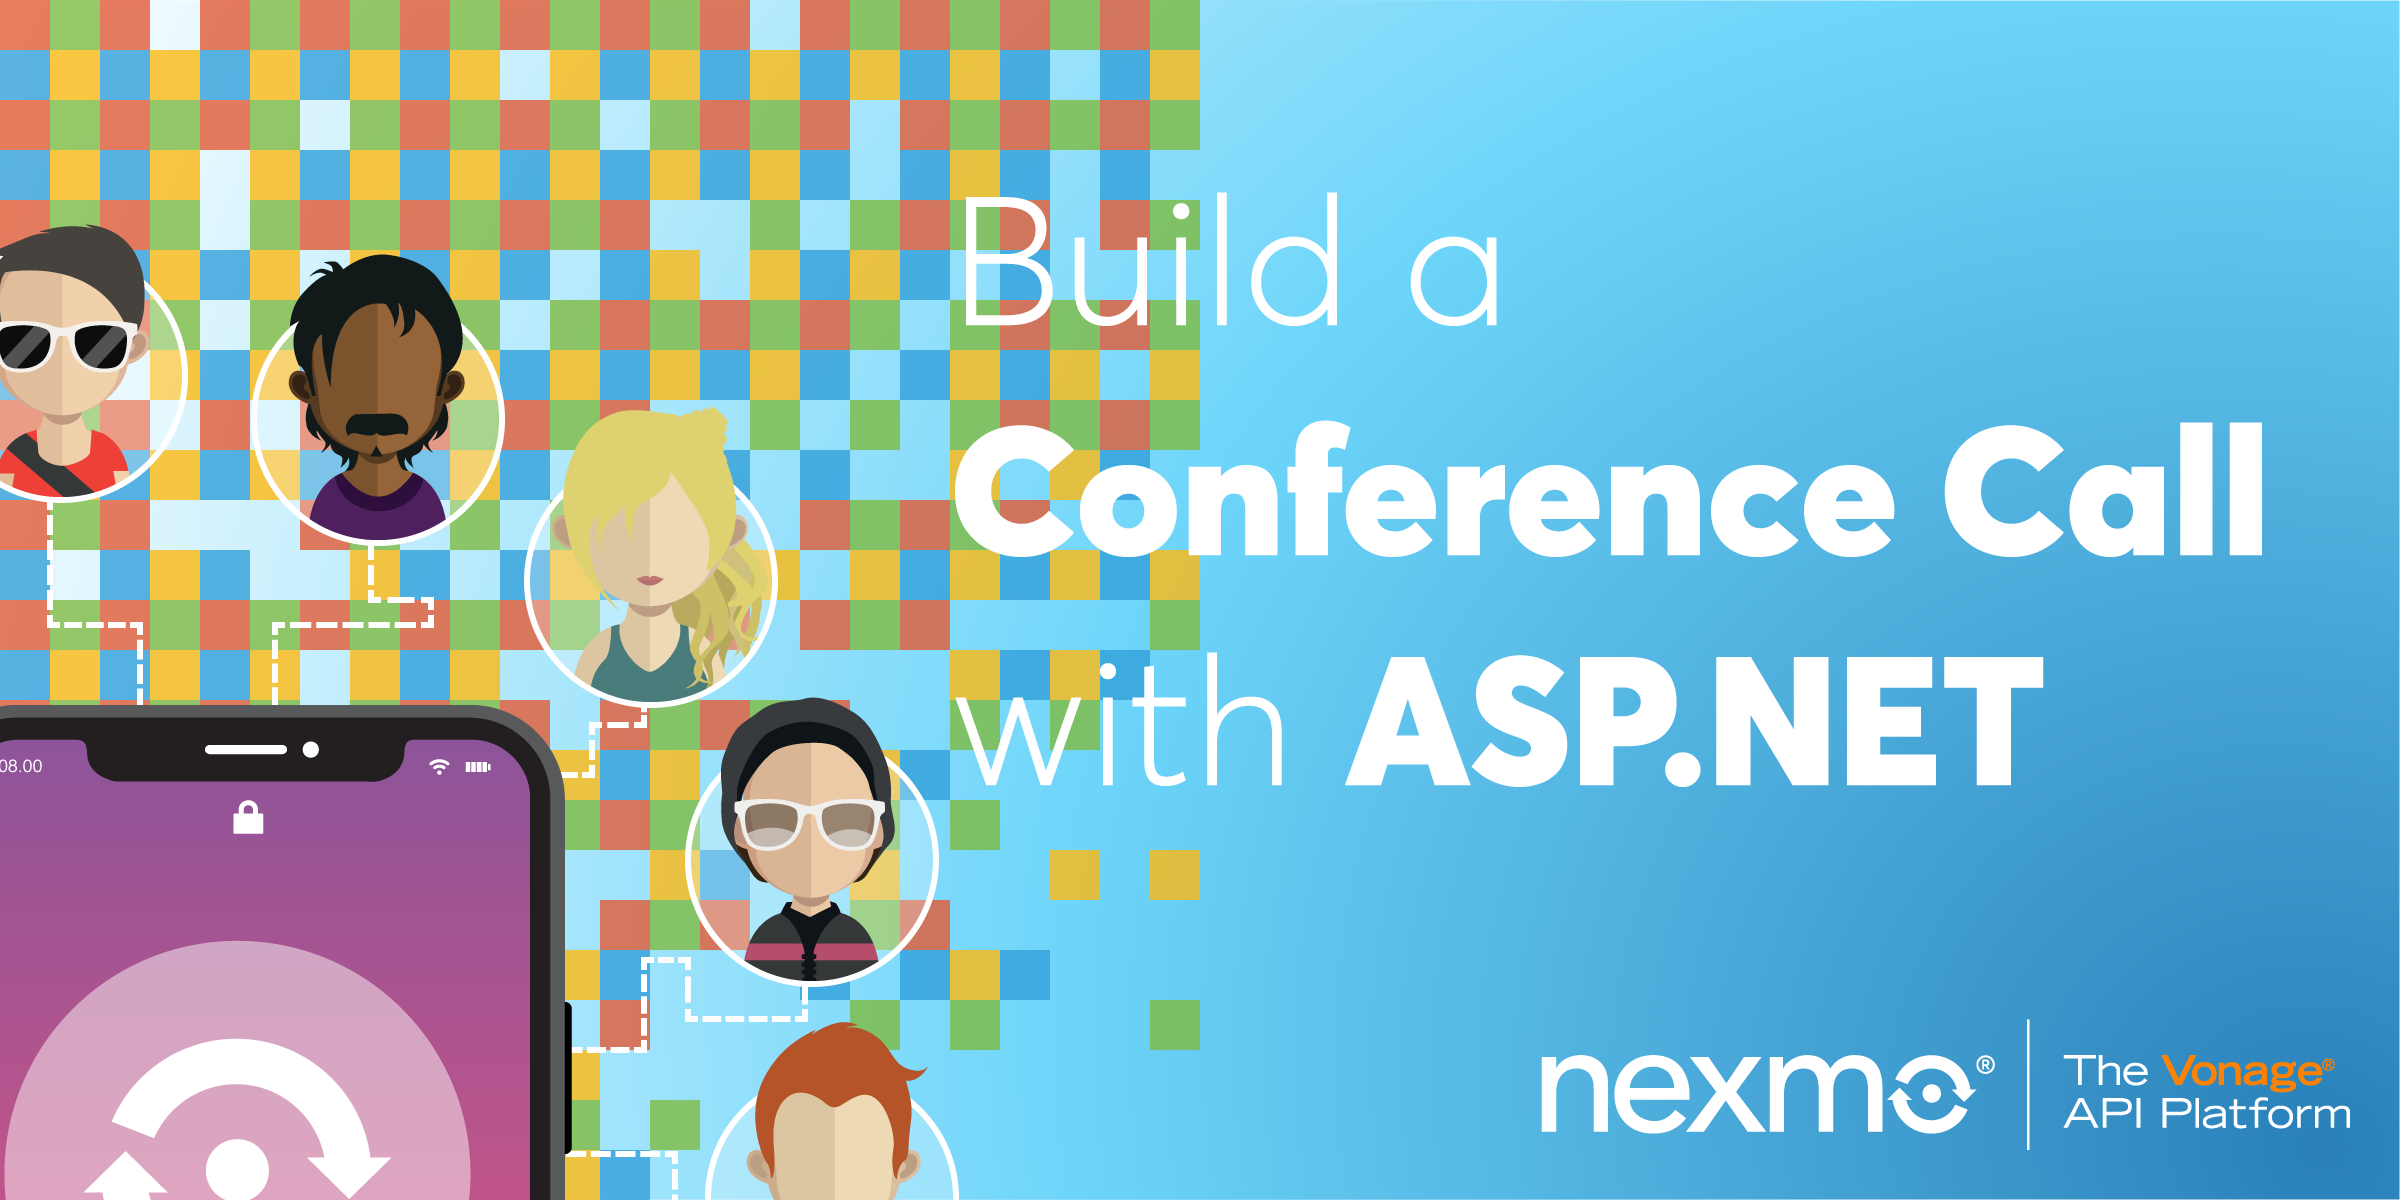 Build a Conference Call with ASP.NET